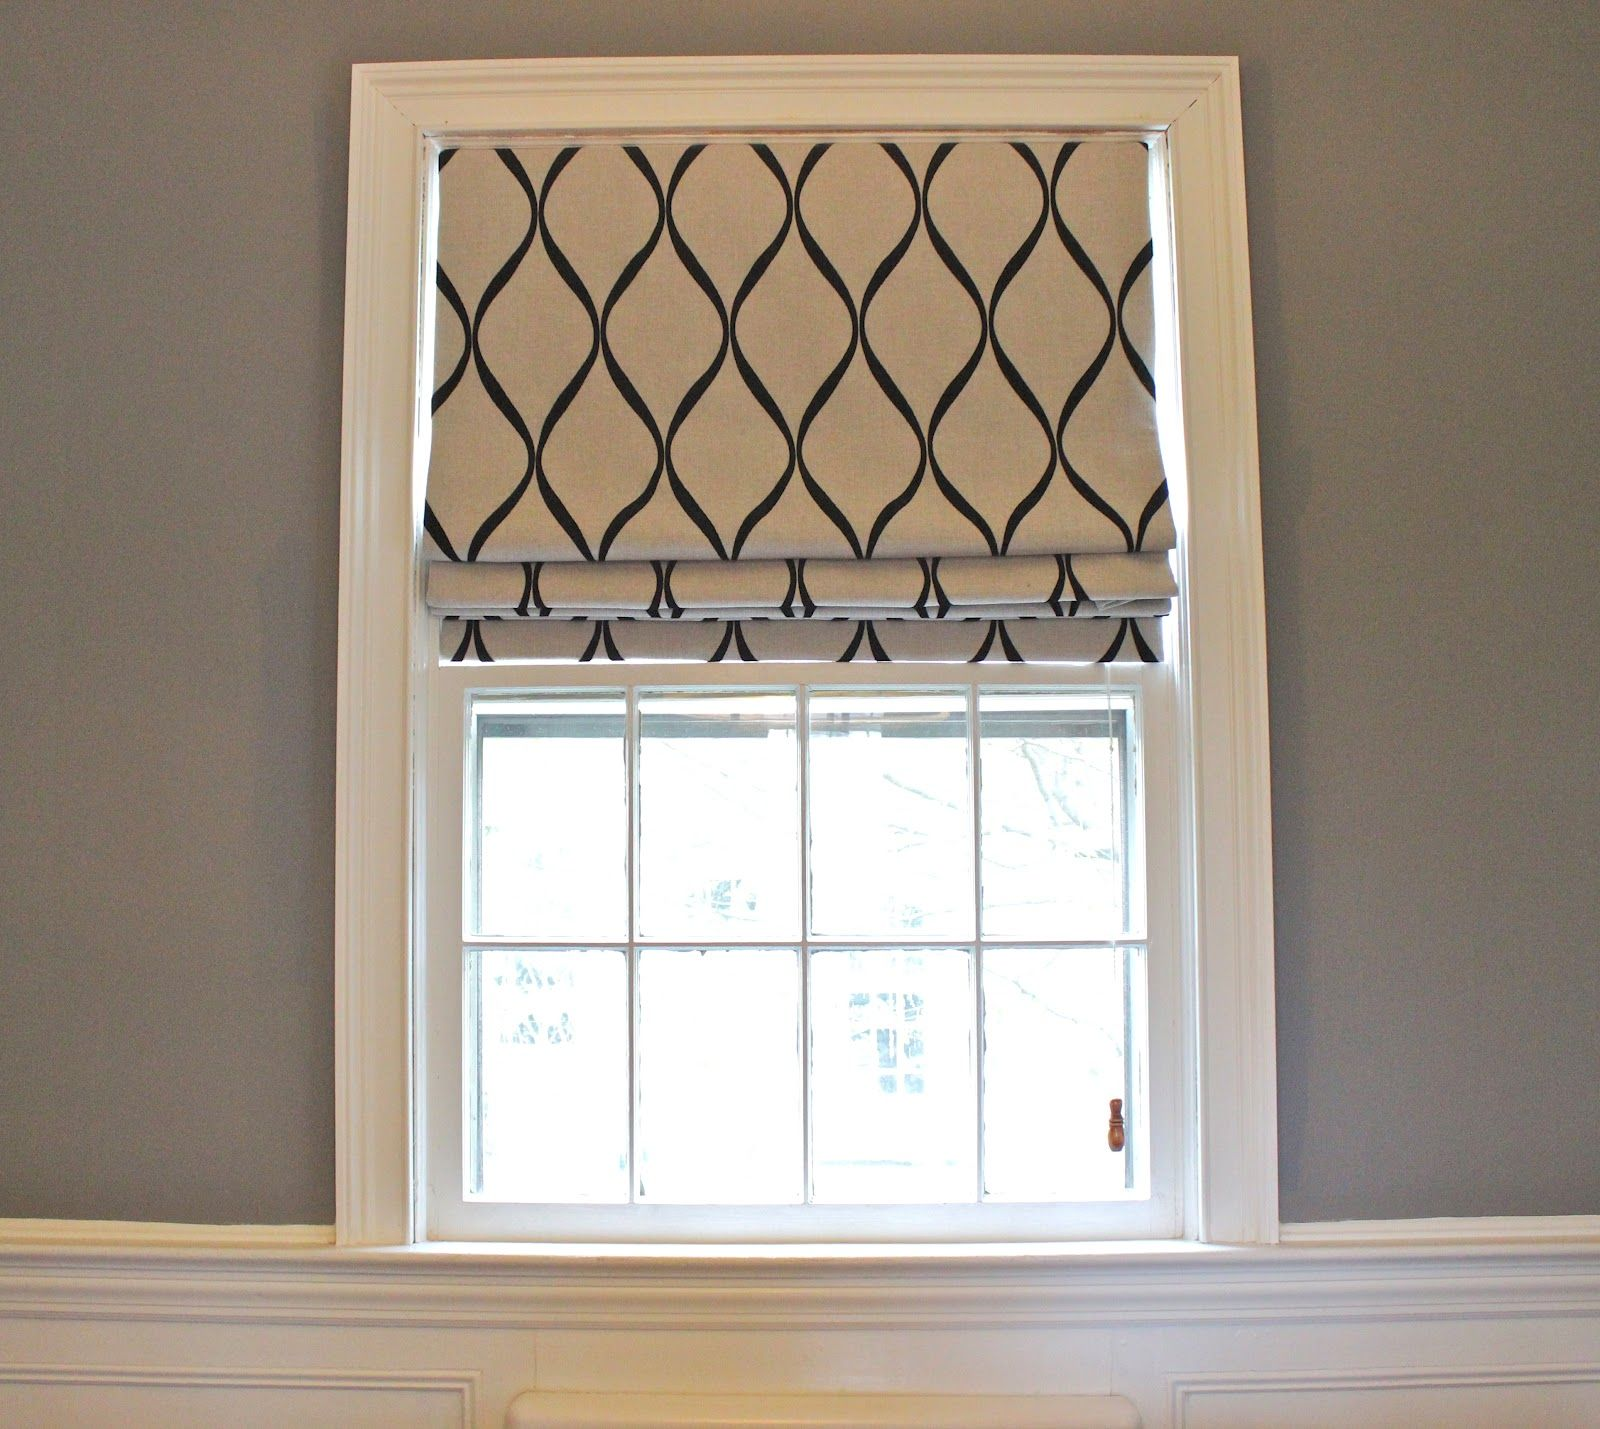 Bedroom Charming Cordless Roman Shades With Window Molding And Wall Panel Also Interior Paint Ideas Shades For French Doors Roman Shades Drapes And Blinds